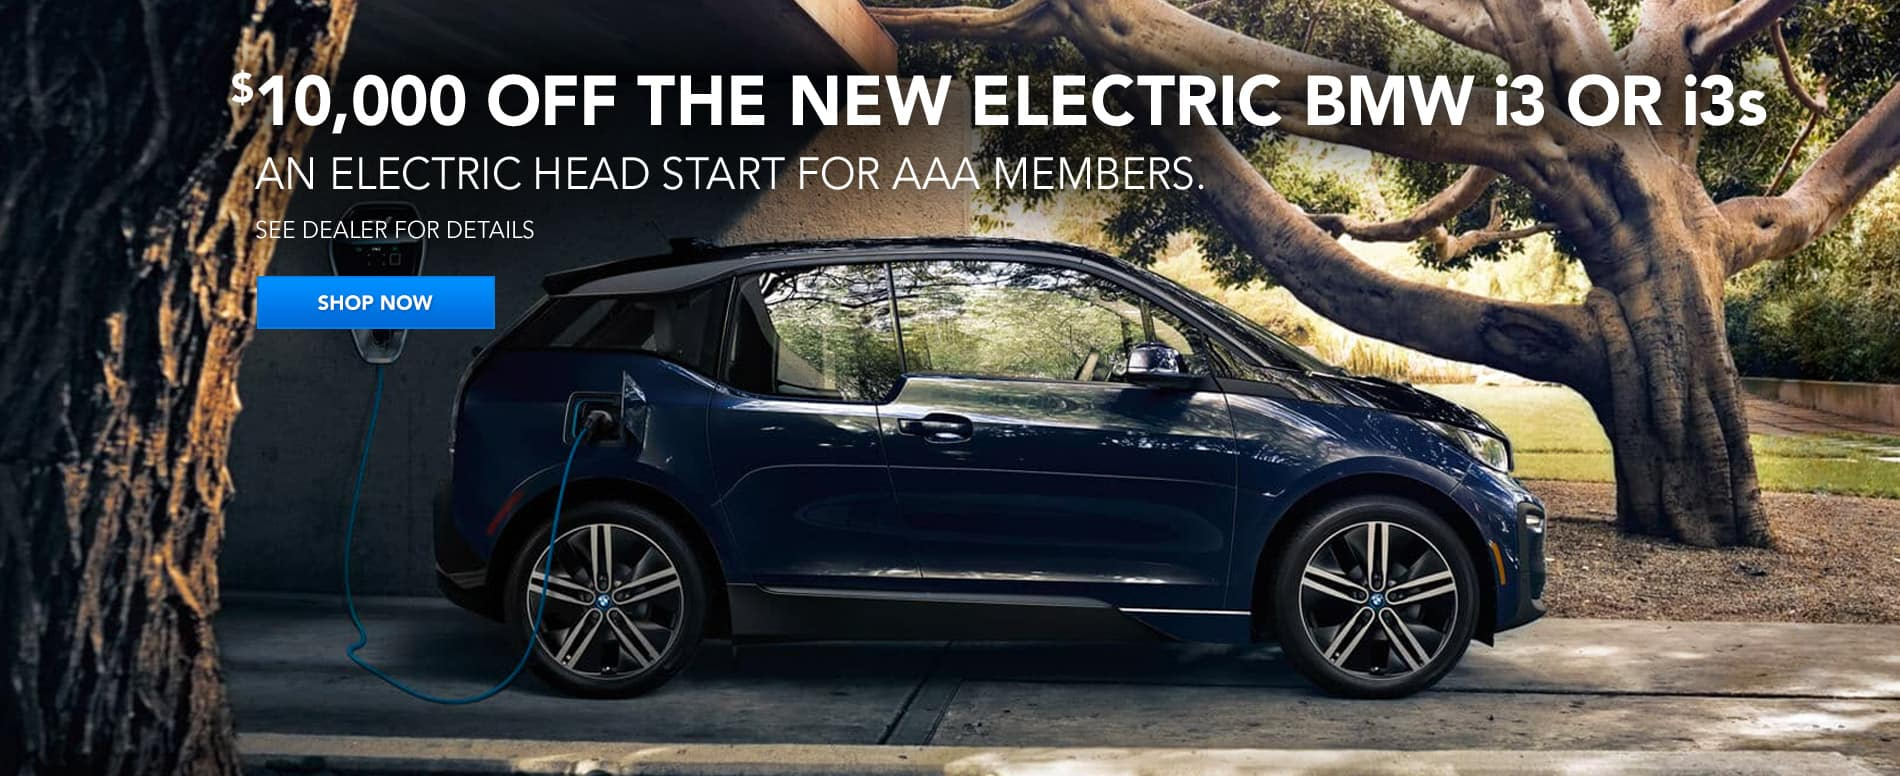 Competition BMW of Smithtown | Your Preferred New & Pre